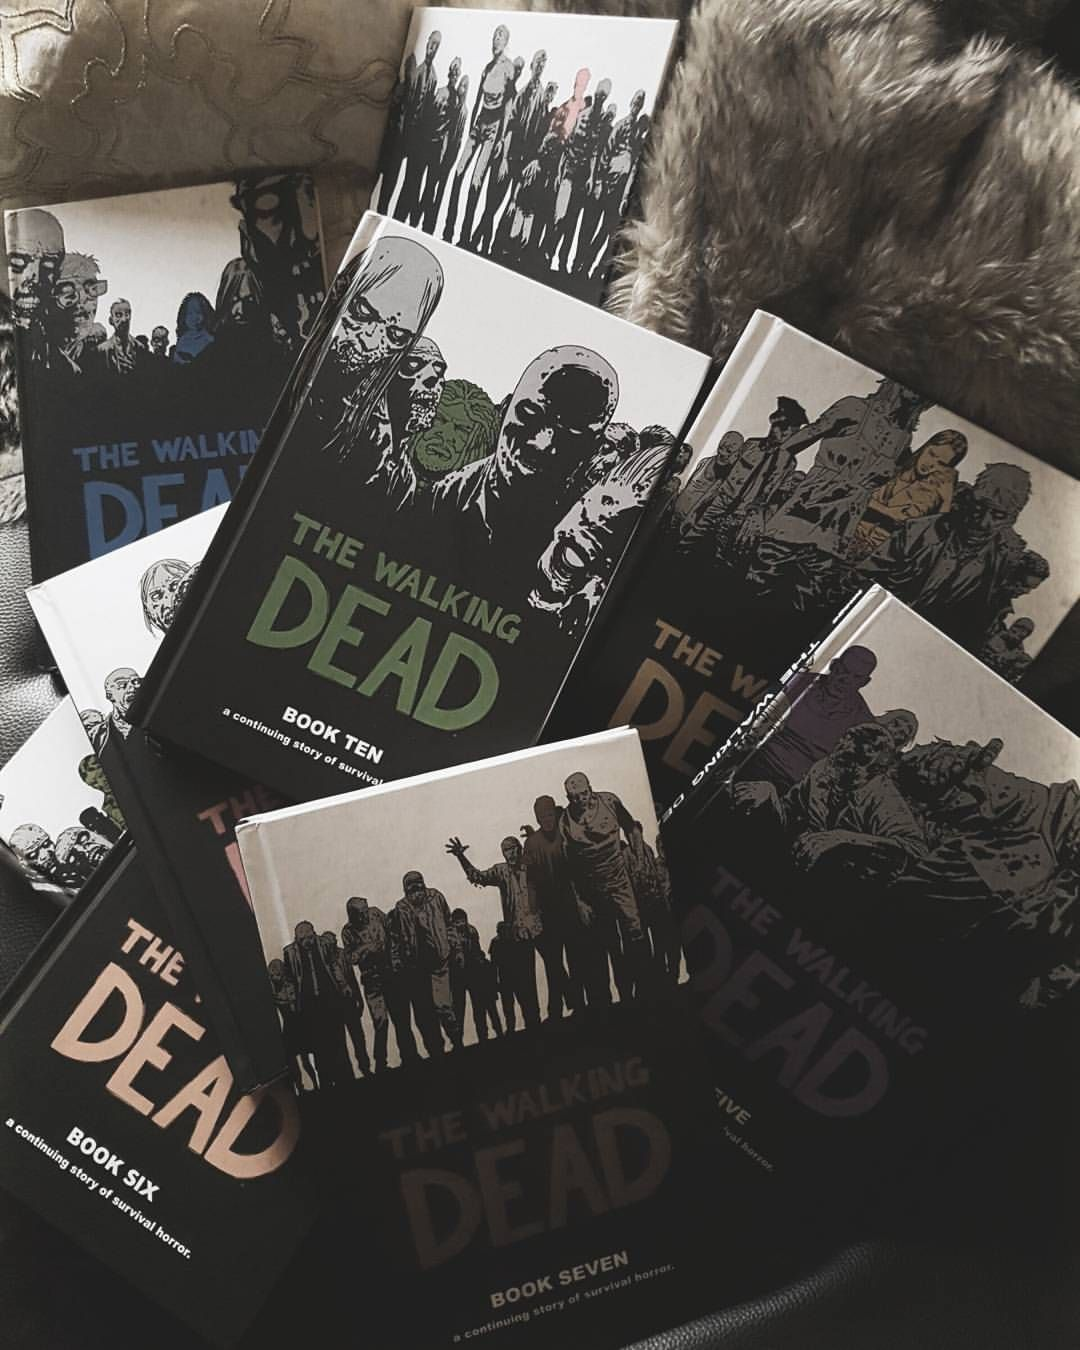 People getting angry about spoilers. The show is based on these books (graphic novels) y'all. 😂 The books are far ahead of the tv show. #thewalkingdead #twd #comics #graphicnovel #graphicnovels #thewalkingdeadcomics #twdcomic #amcthewalkingdead #robertkirkman #thewalkingdeadcomic #nerdlife #twdcomics